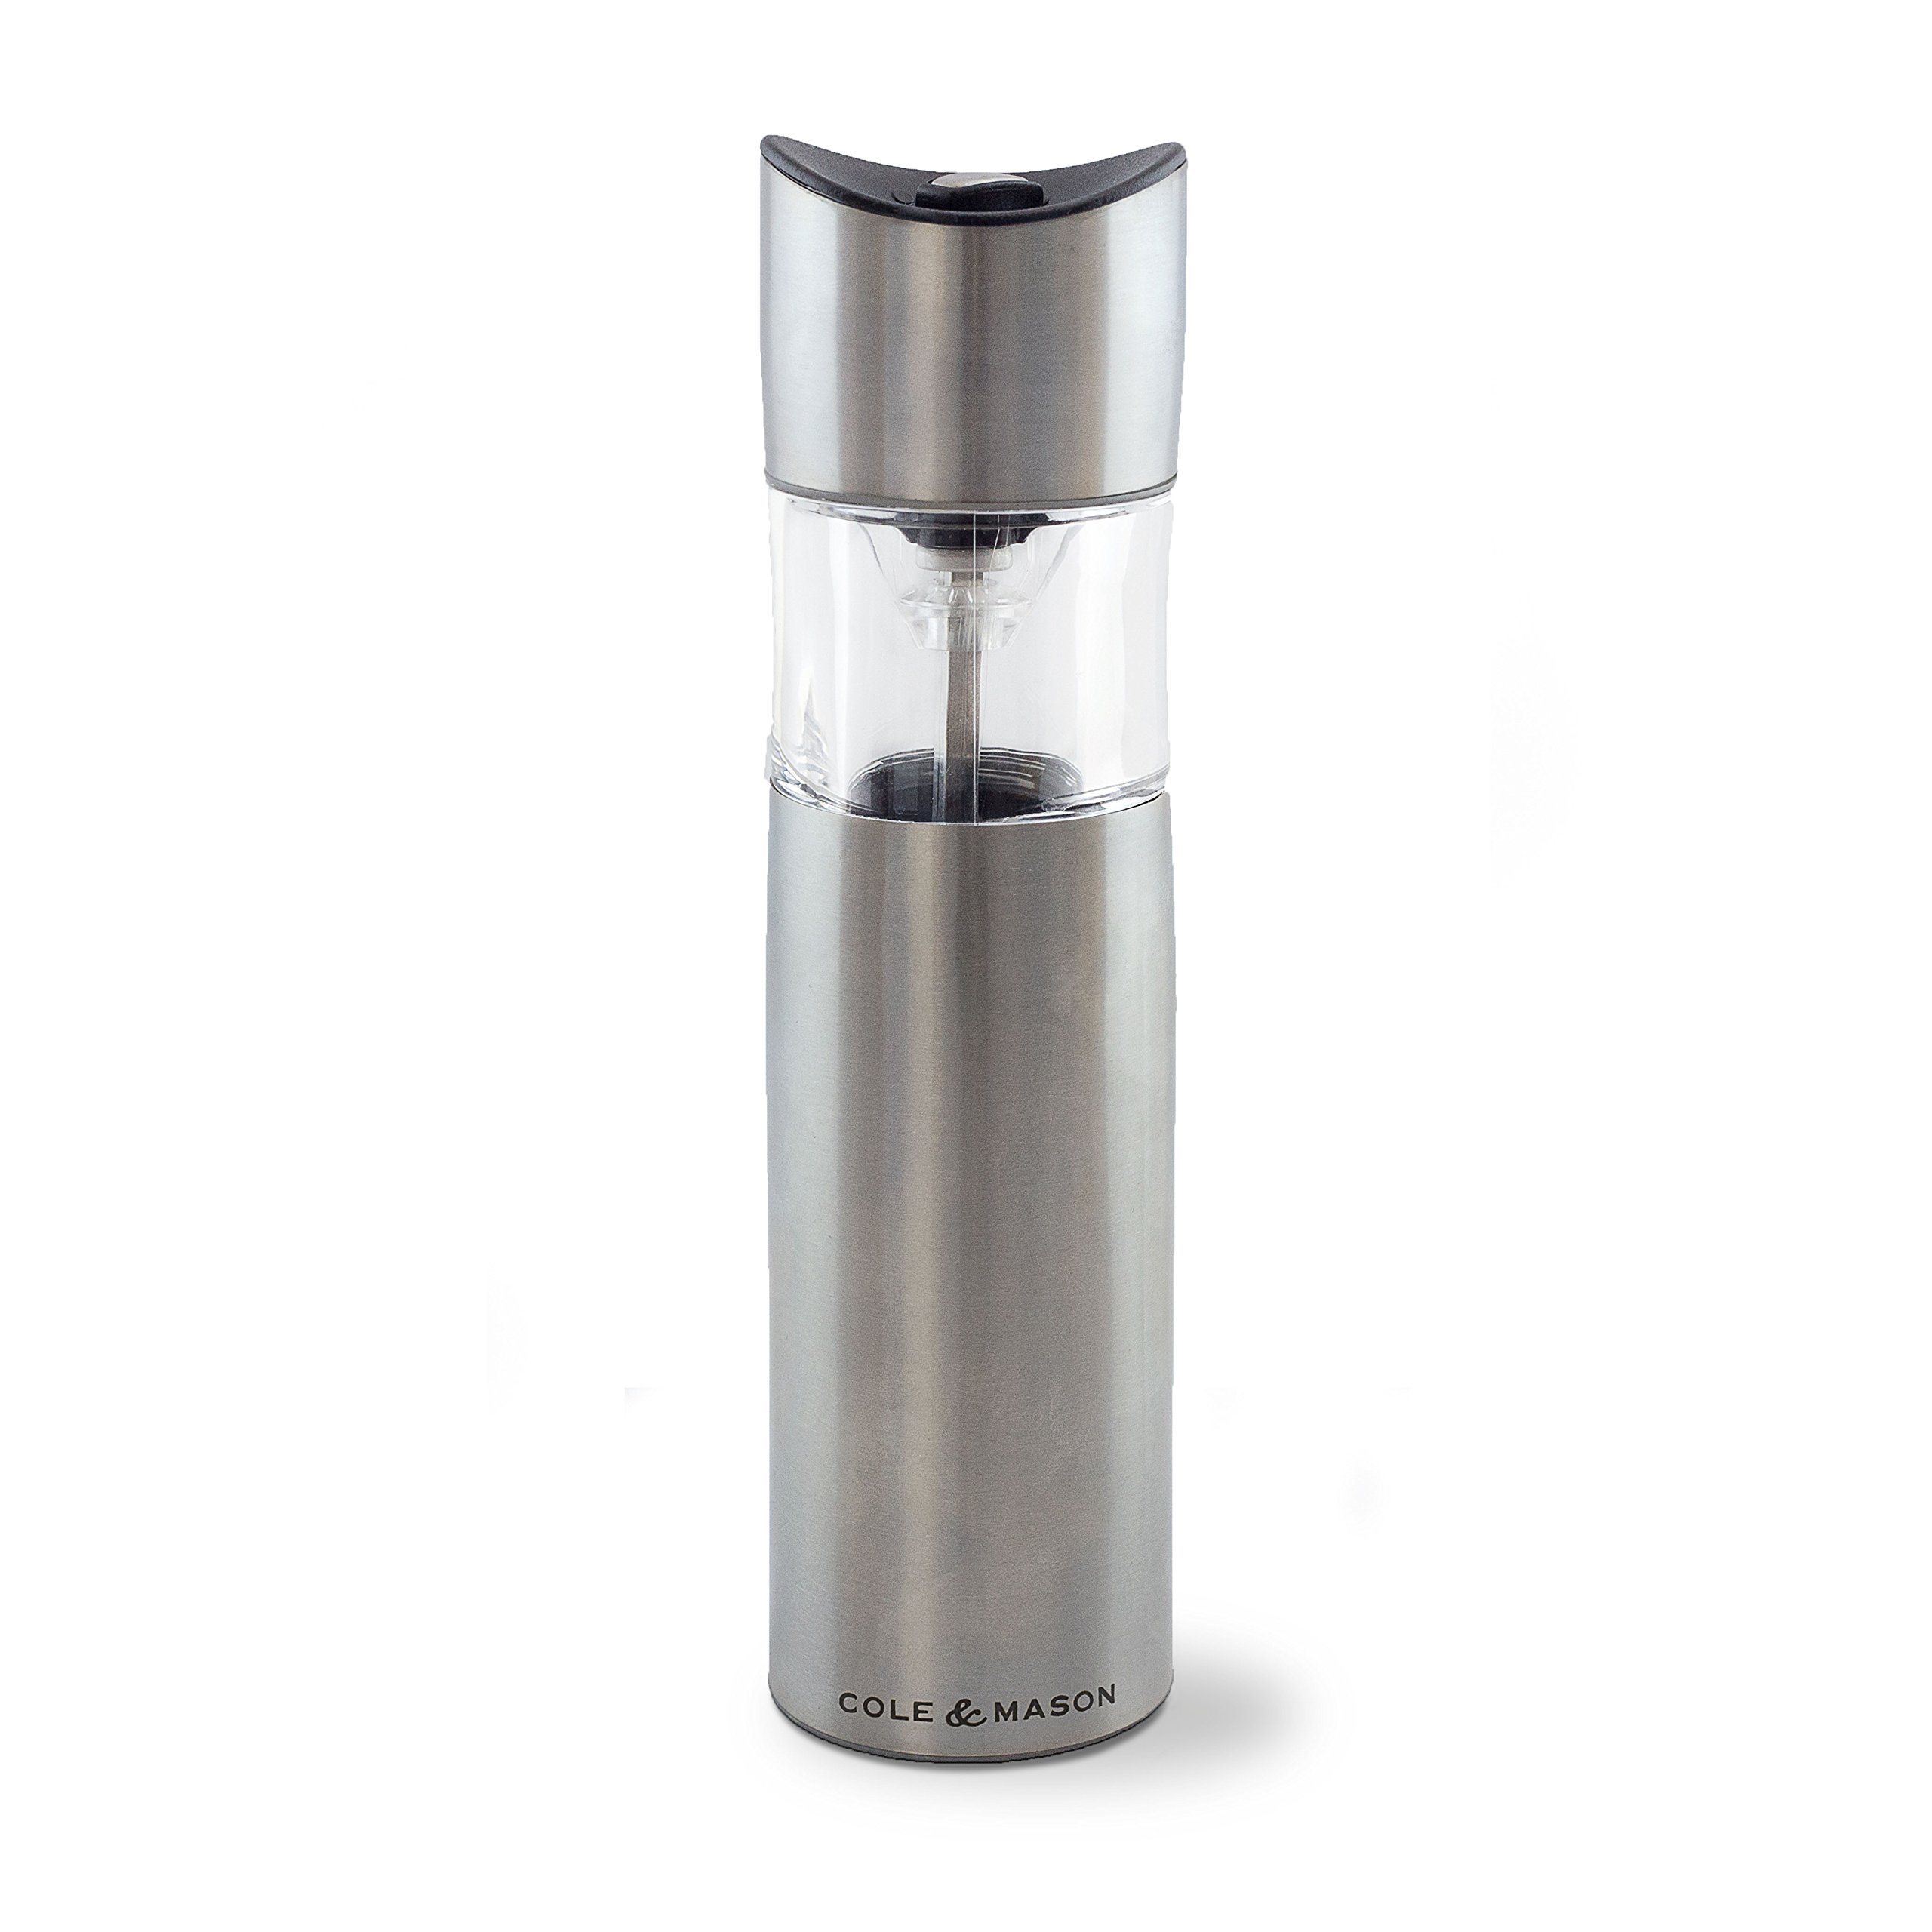 Cole & Mason Penrose Electric Salt and Pepper Grinder - Electronic, Battery Operated Mill, Stainless Steel by Cole & Mason